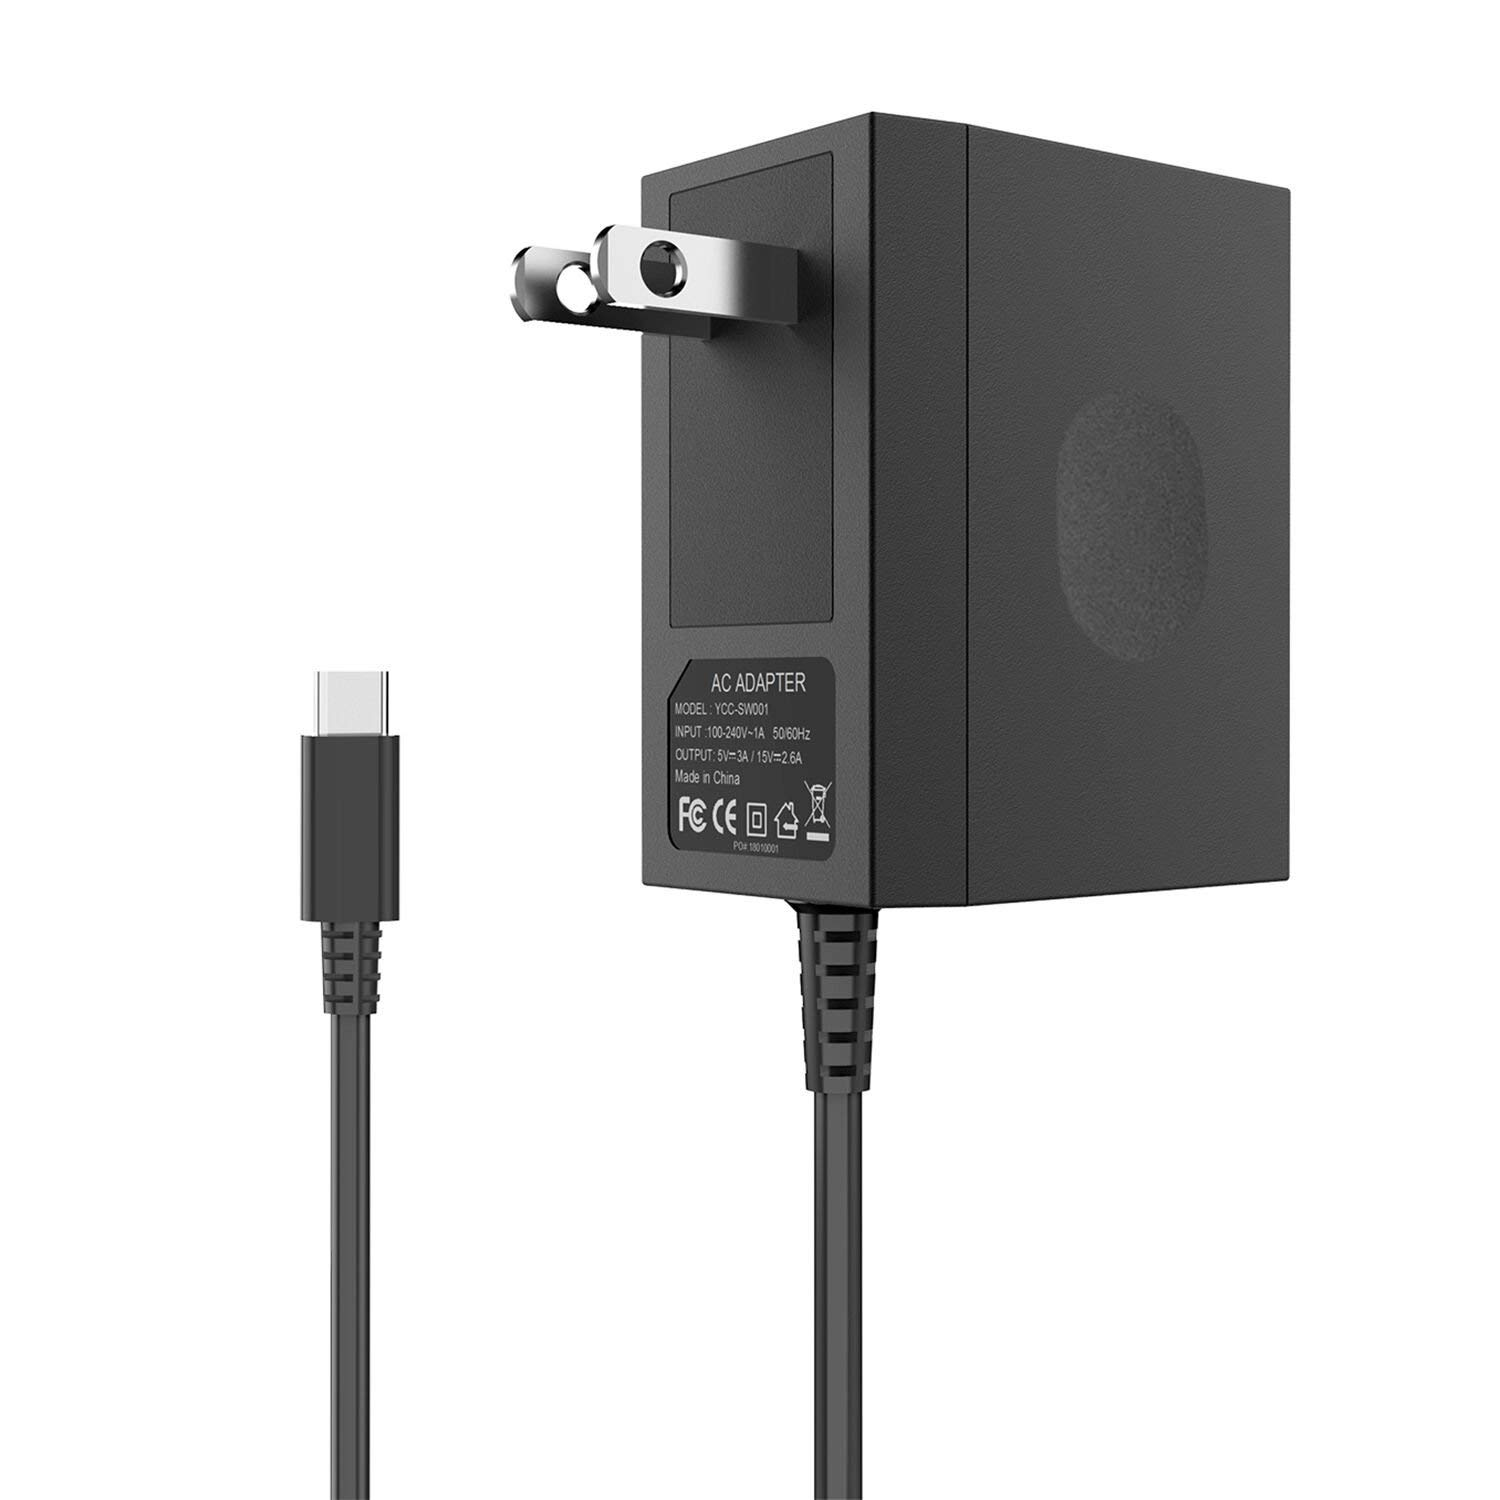 Switch Charger for Nintendo Switch, AC Power Supply Adapter Compatible with Nintendo Switch, 15V/2.6A Support TV Mode, Fast Charger for Nintendo Switch by pdobq (Image #7)